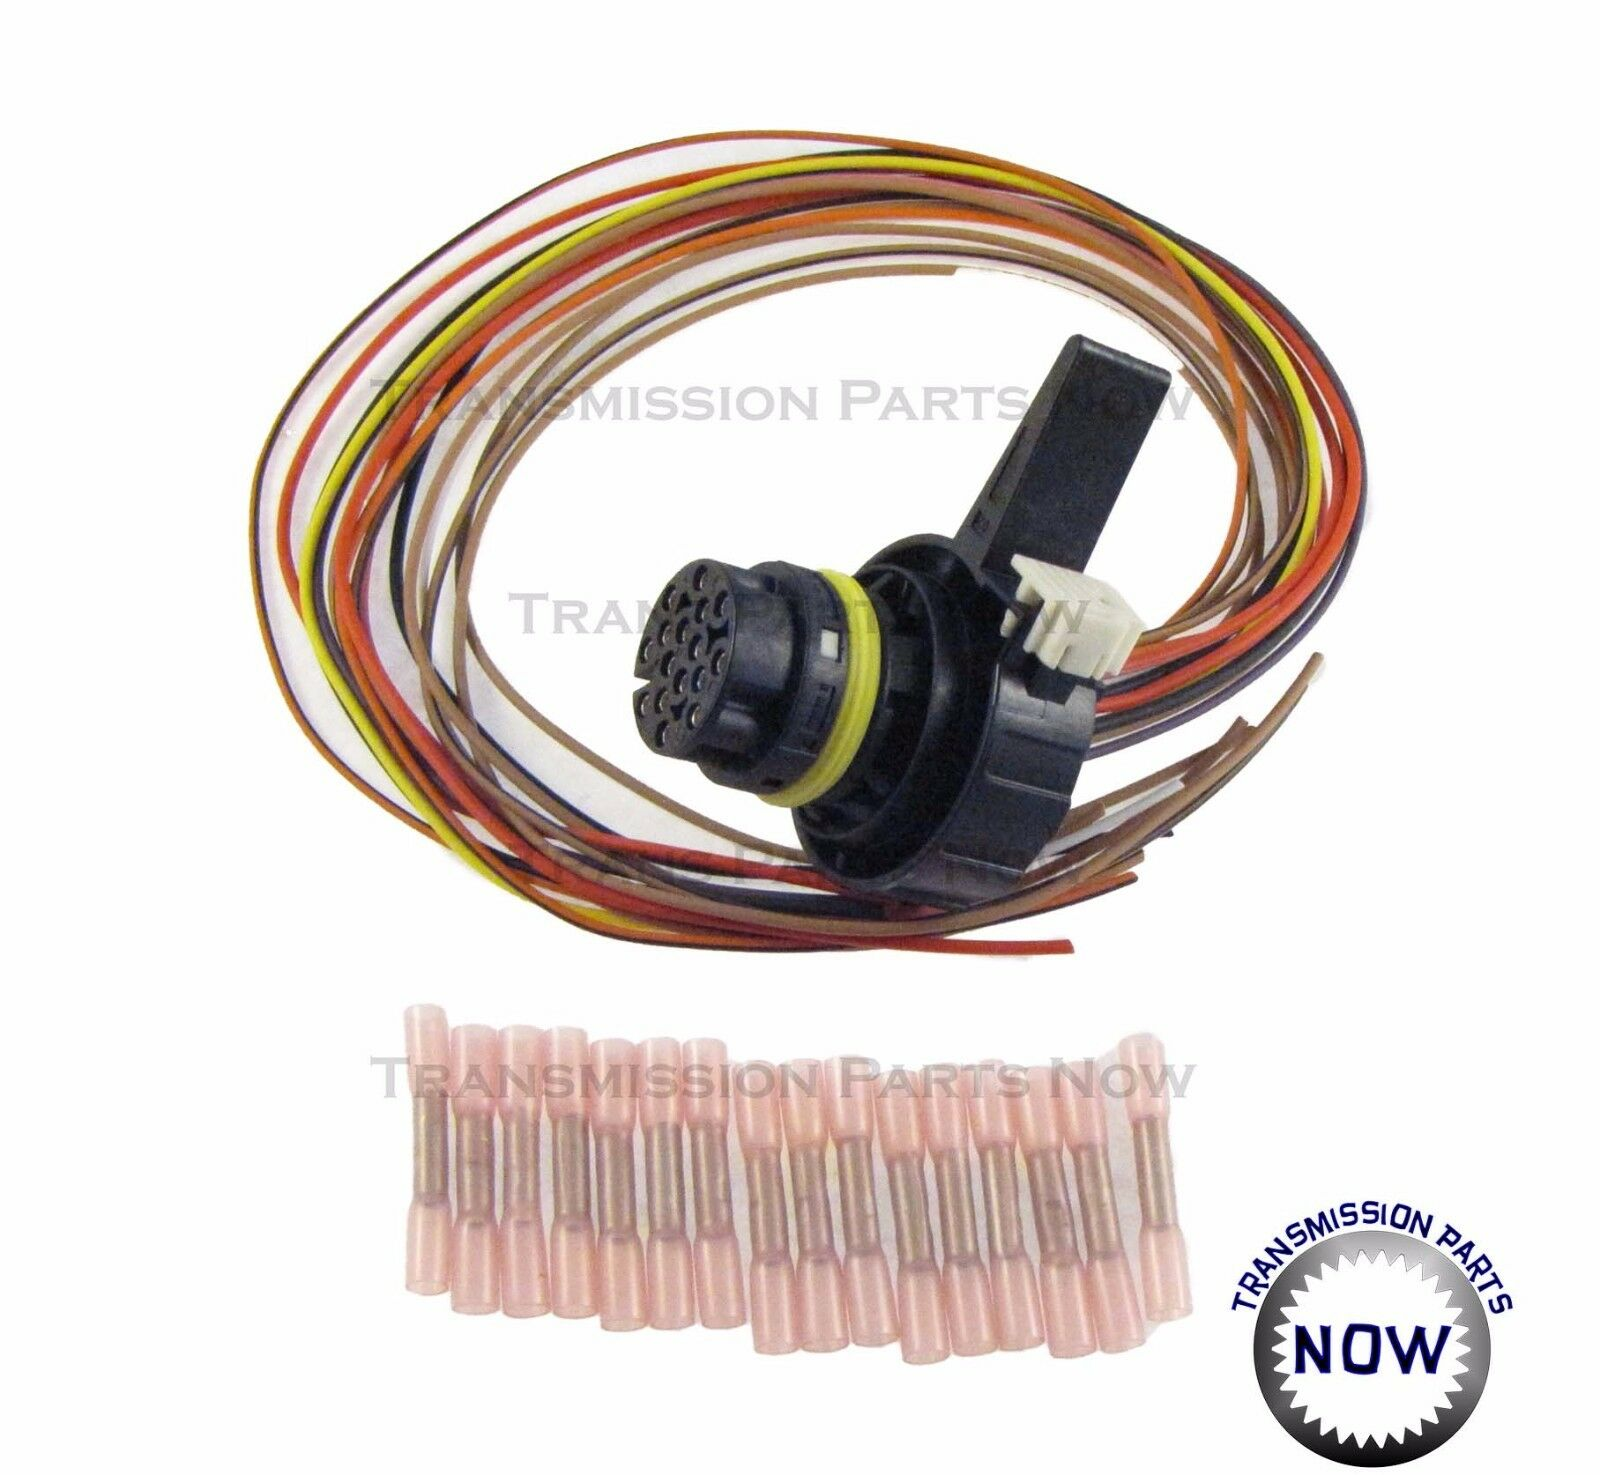 Chevy Gmc 6l80 6l90 Transmission Rostra Repair Wiring Harness Kit 1 Of See More